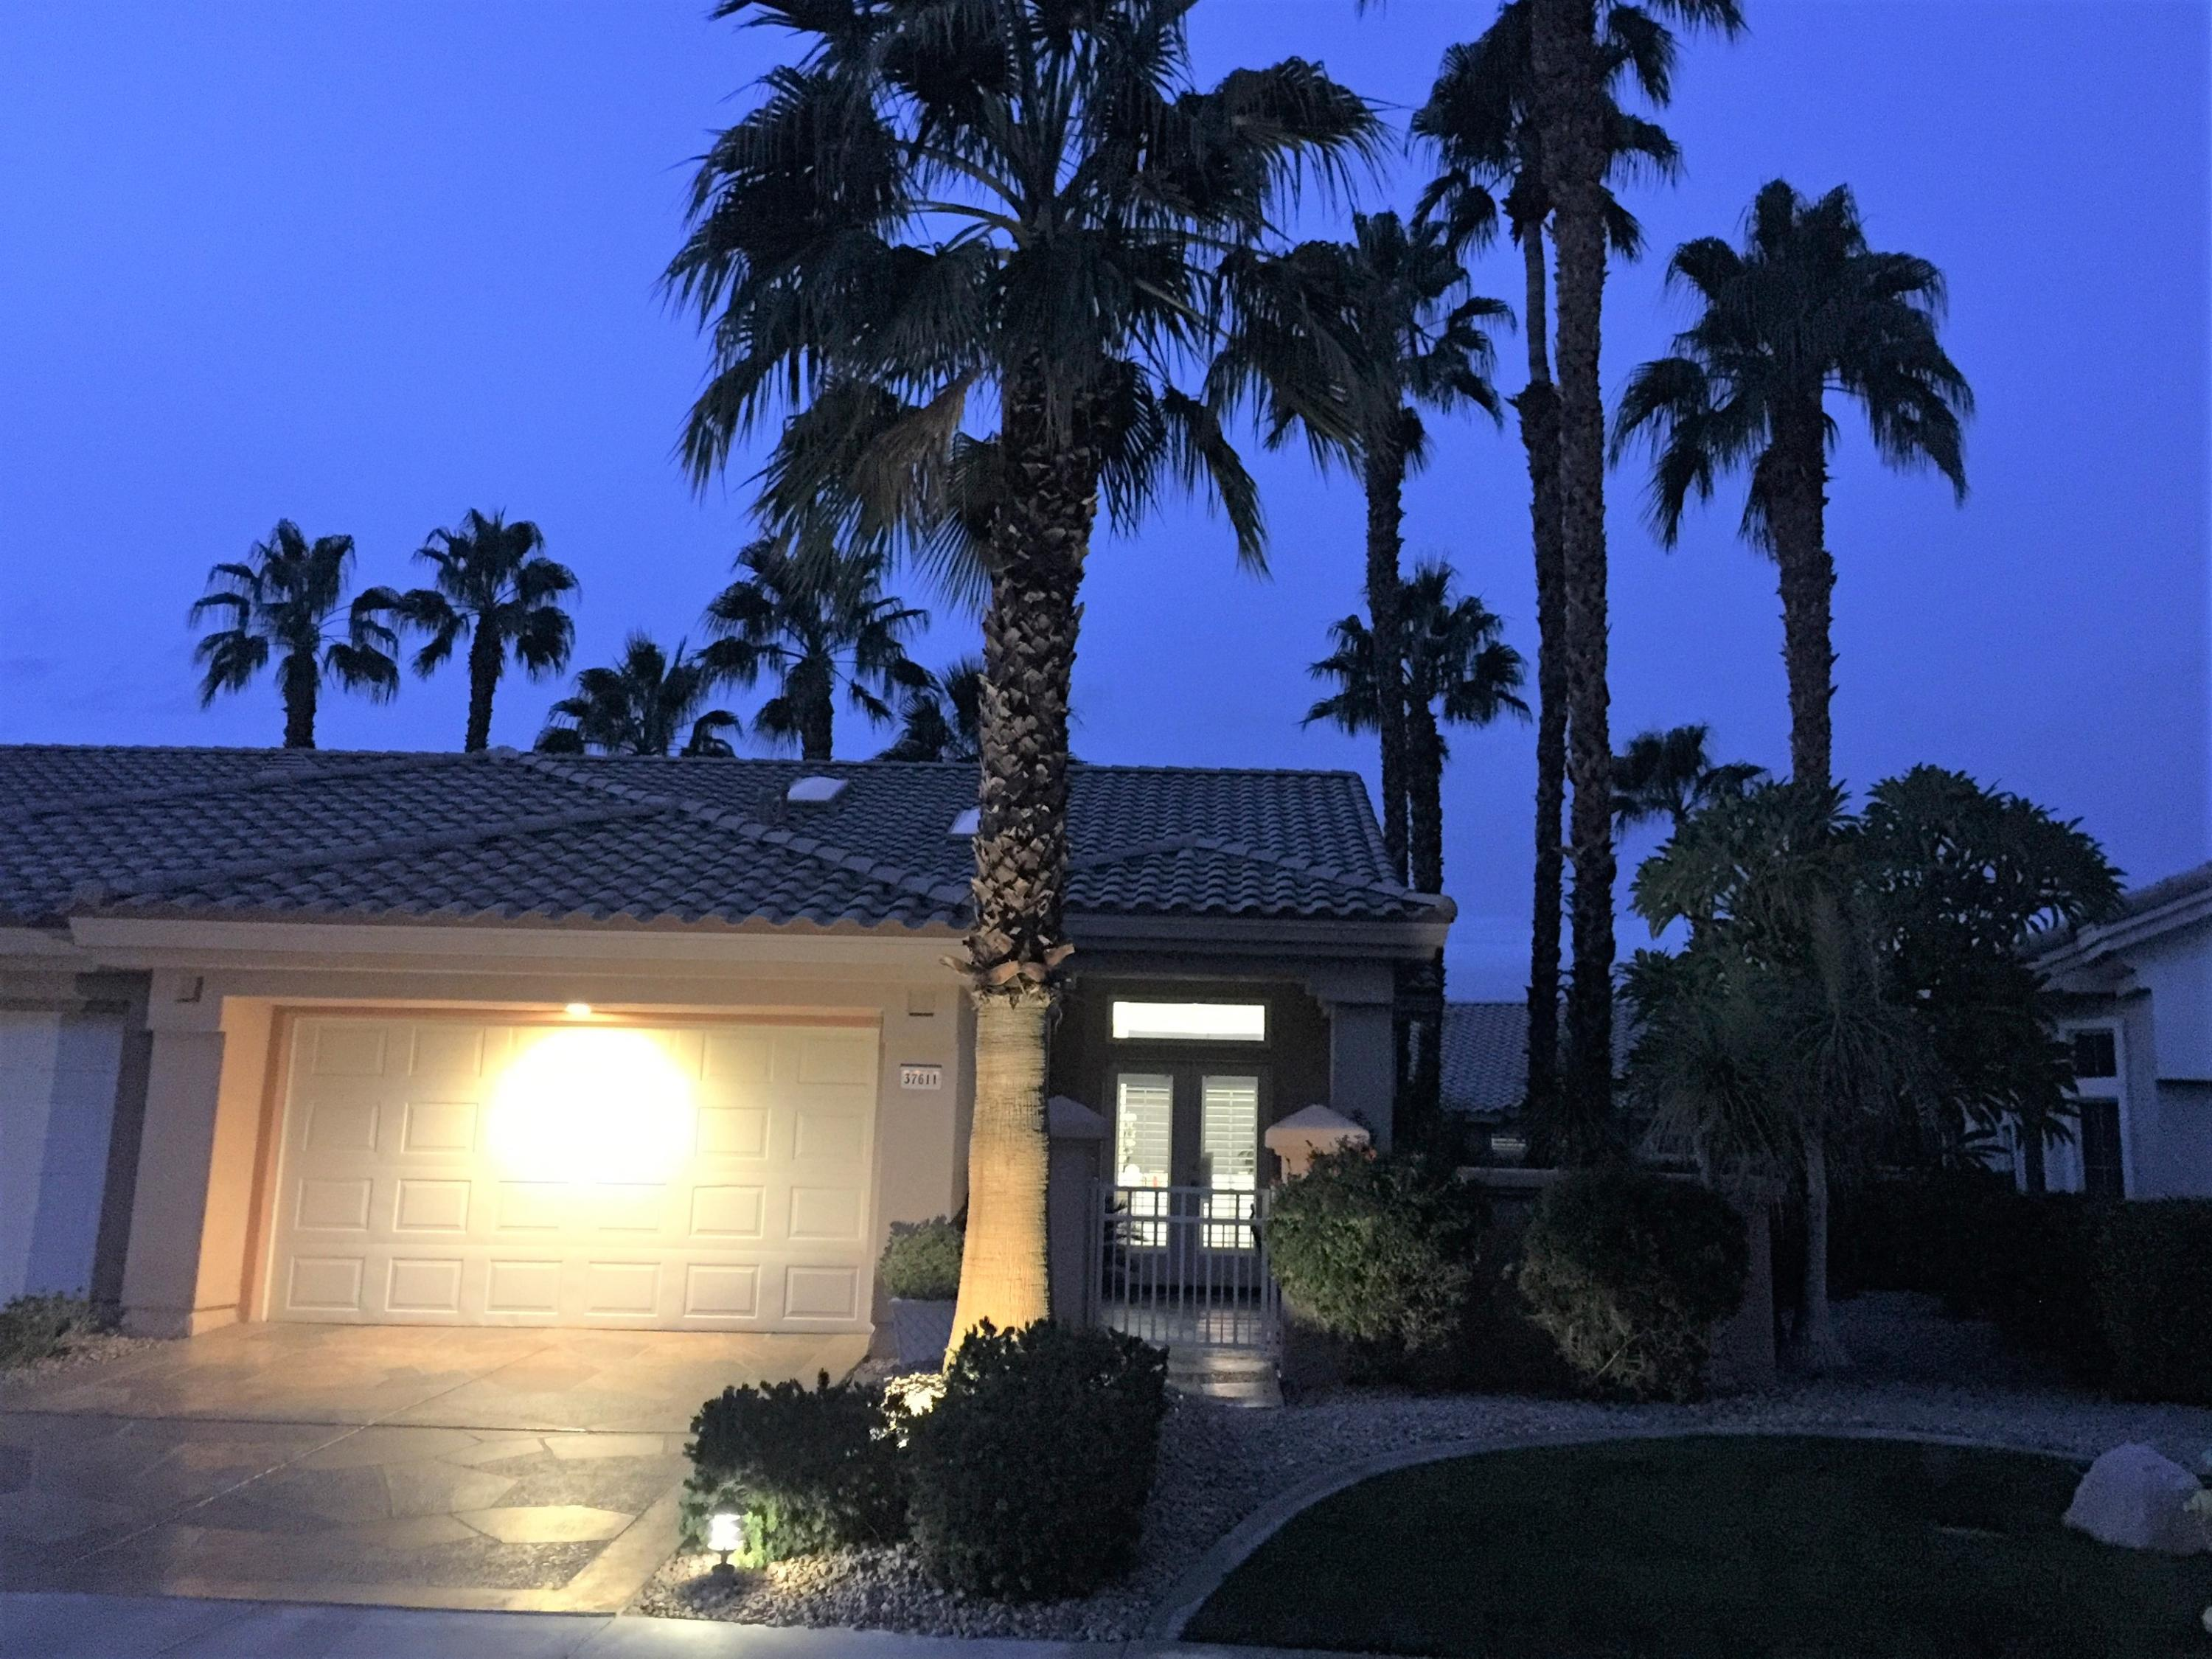 Photo of 37611 Blue Sky Ave. Avenue, Palm Desert, CA 92211